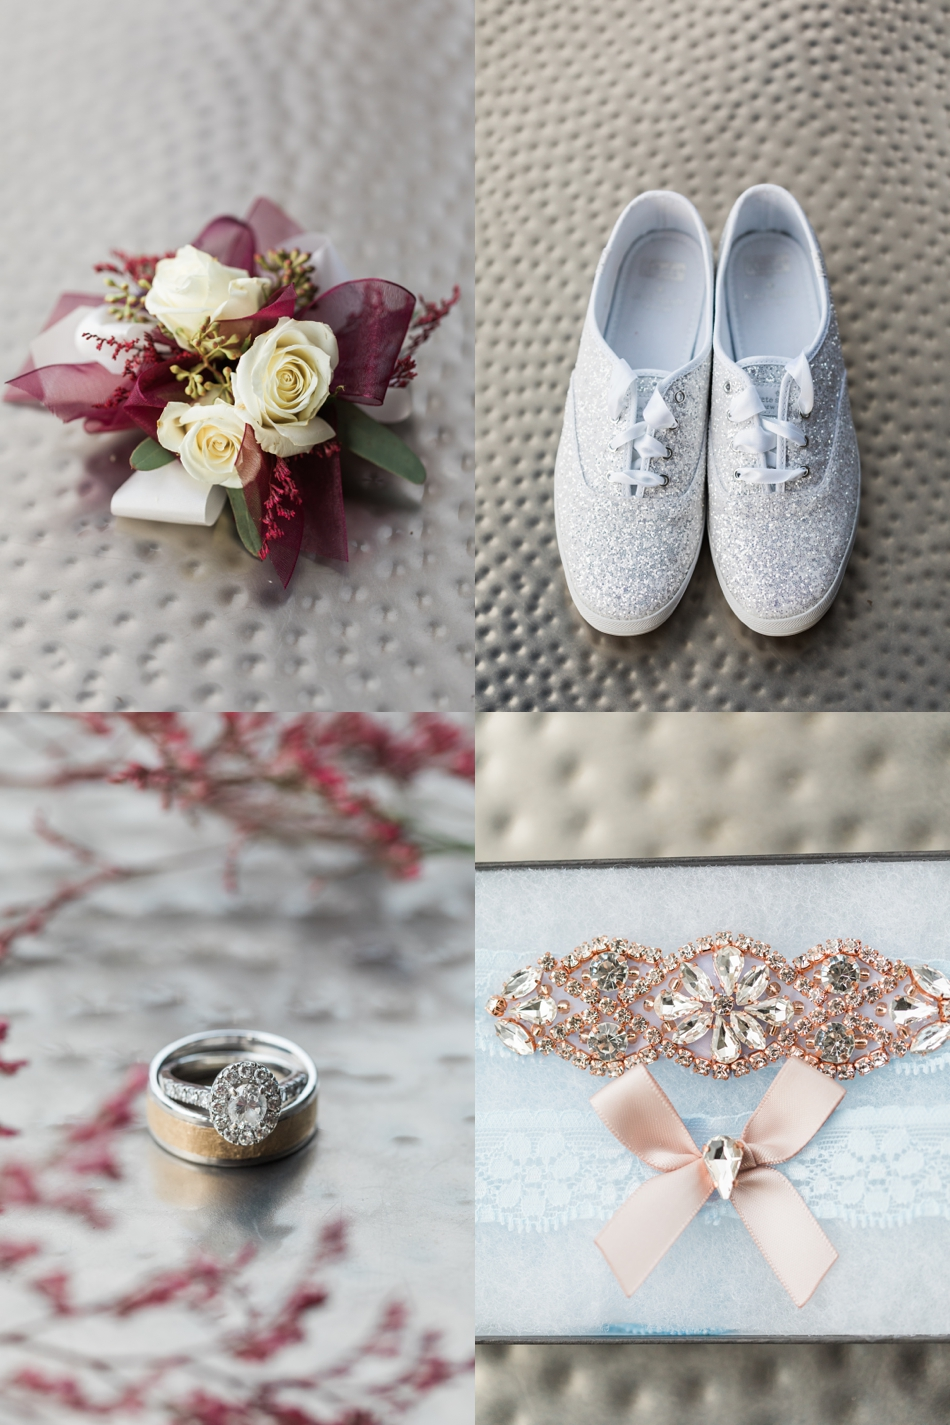 A photo of bridal accessories before a winter wedding at Hidden Meadows in Snohomish, a wedding venue near Seattle, WA. | Joanna Monger Photography | Snohomish & Seattle Wedding Photographer